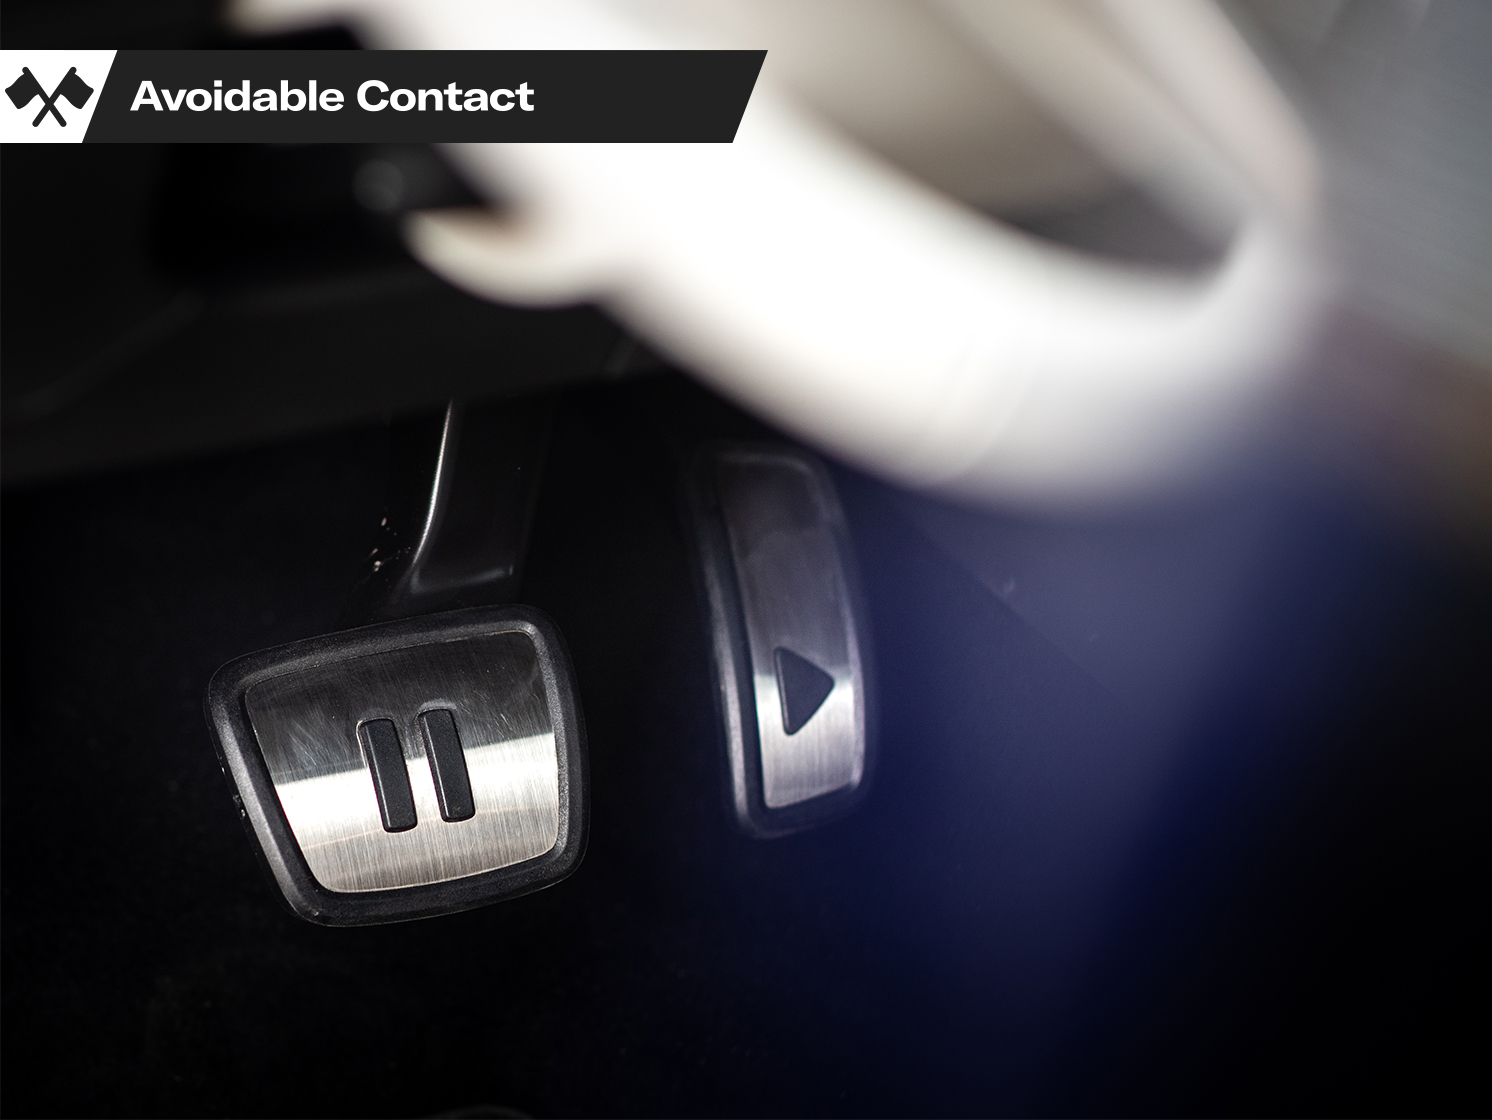 VW Volkswagen EV Play Pause Foot Pedals Avoidable Contact